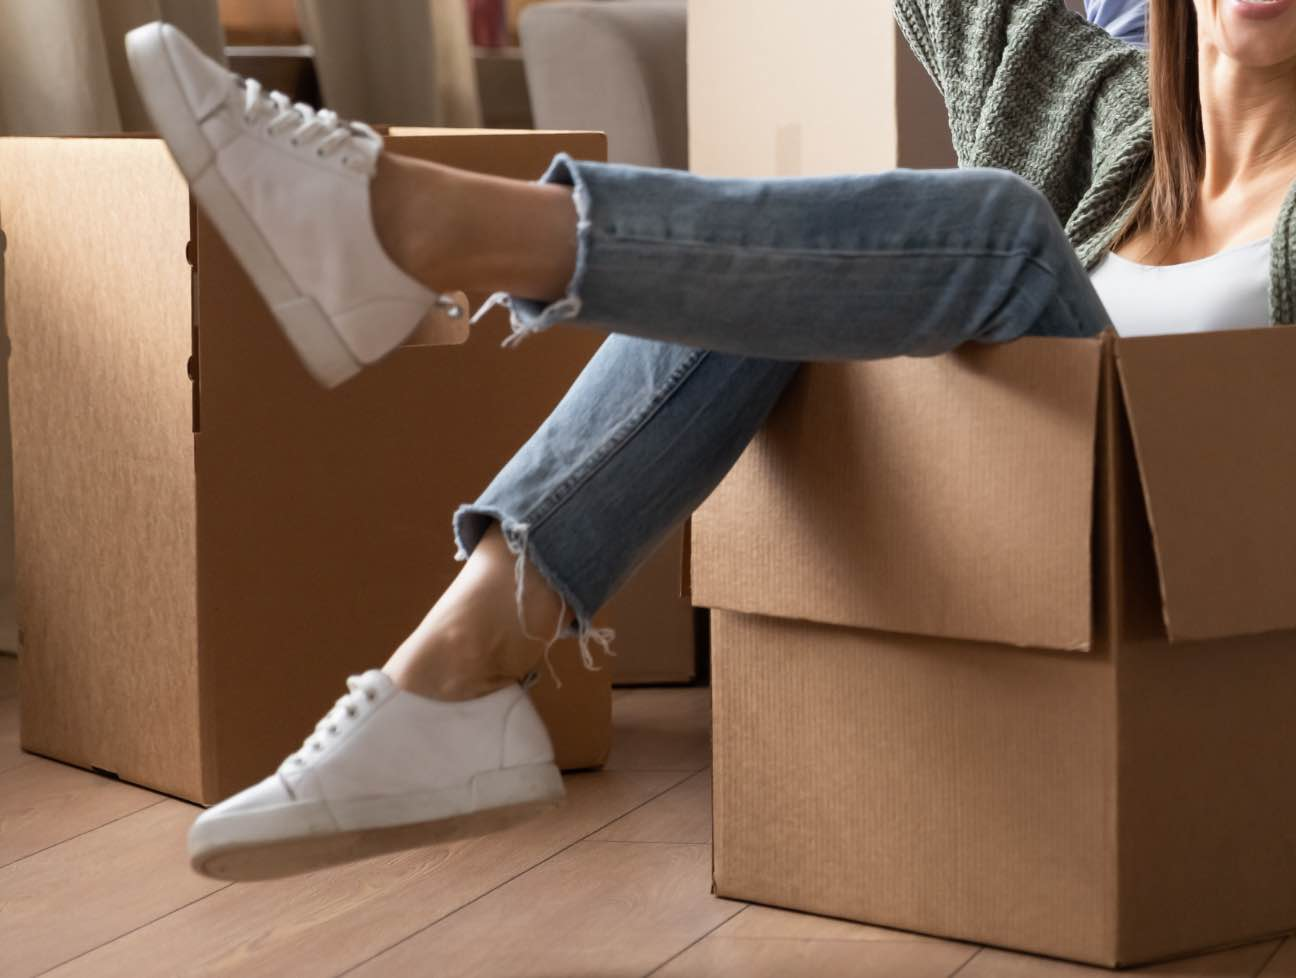 Woman sitting in cardboard moving box, kicking feet out